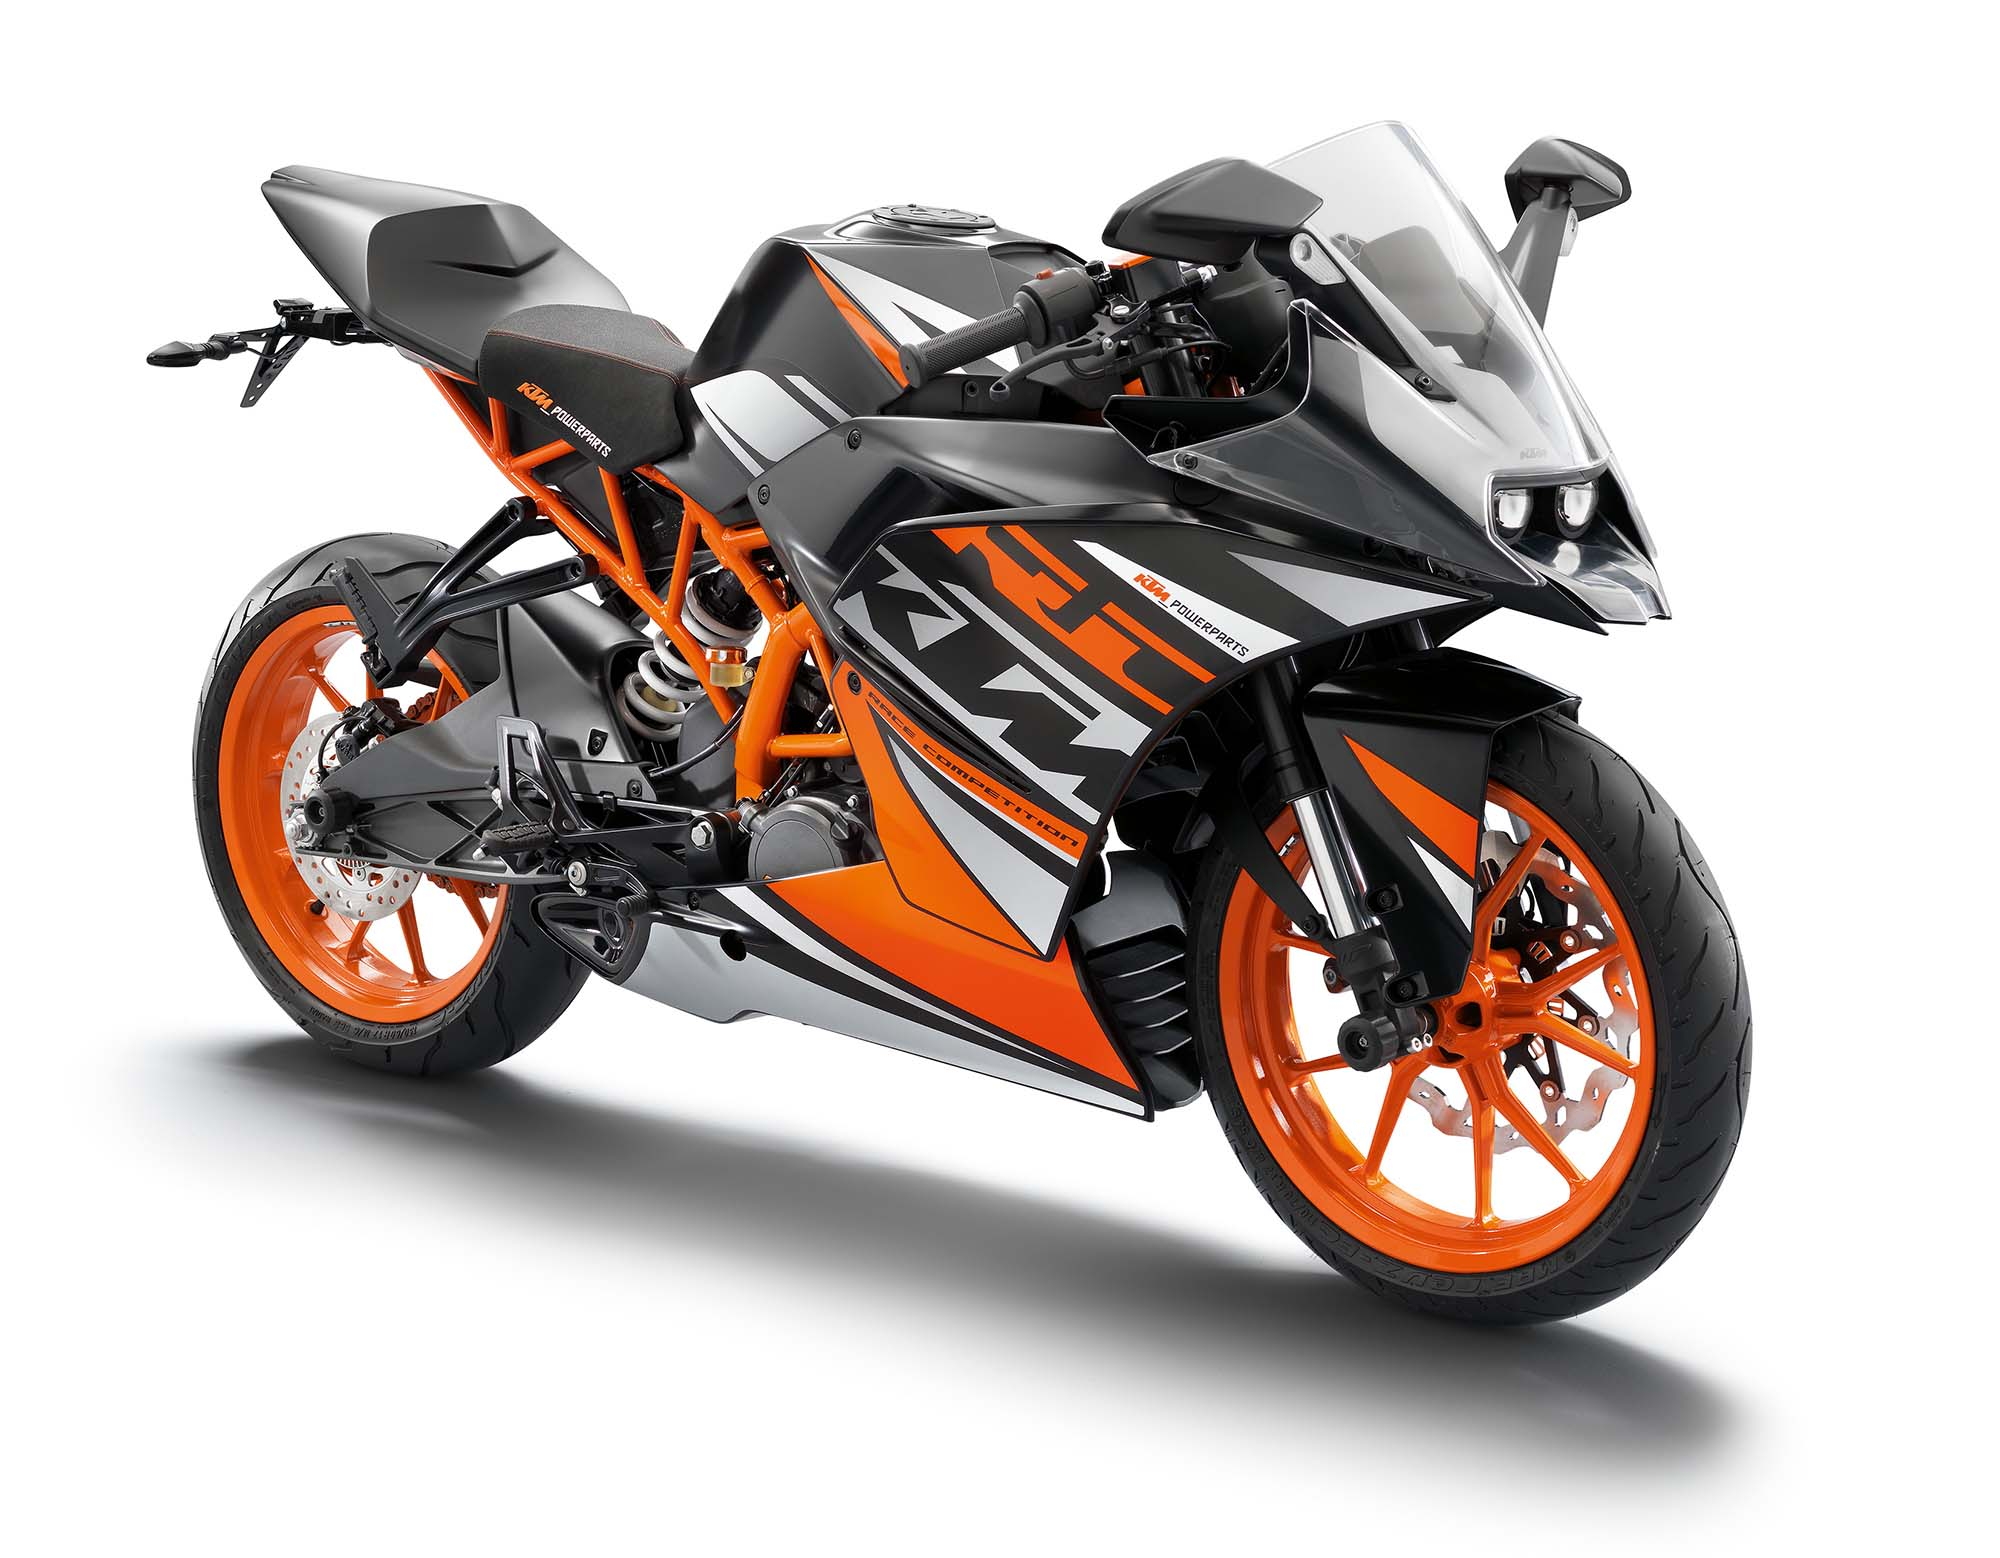 2014 Ktm Rc200 Amp Ktm Rc125 The More The Merrier